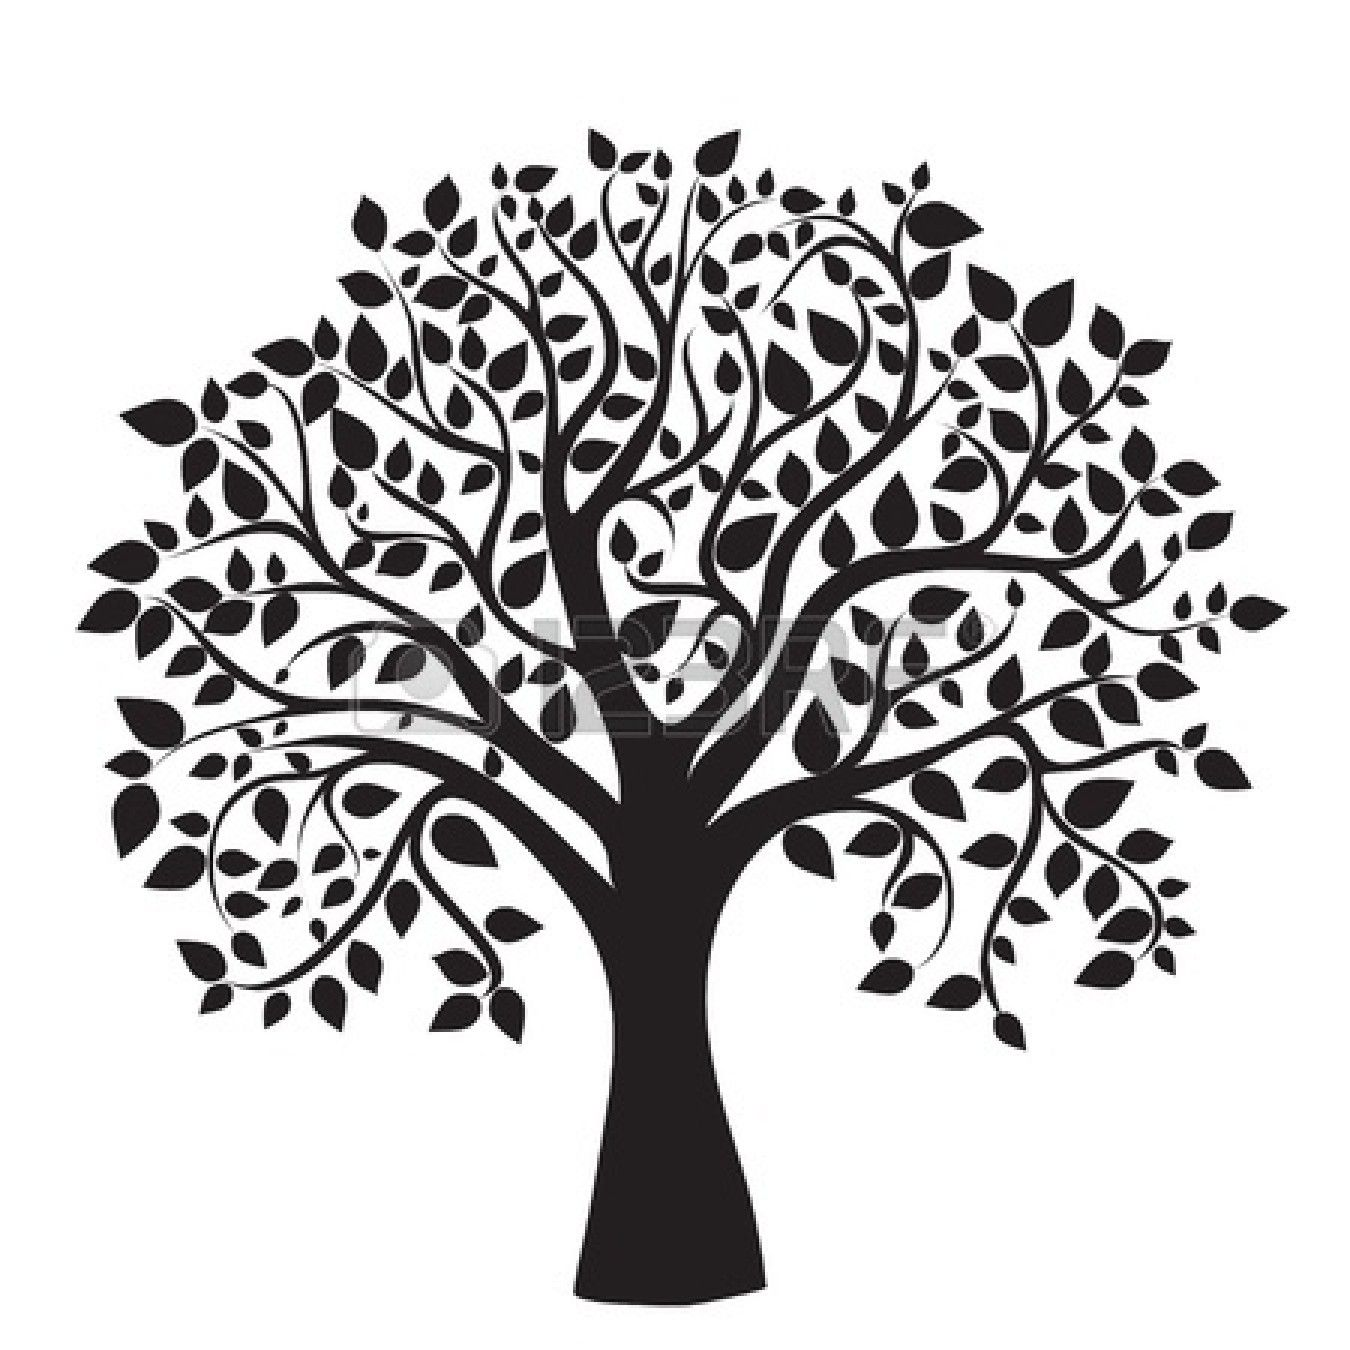 Tree Of Life Images, Stock Pictures, Royalty Free Tree Of.